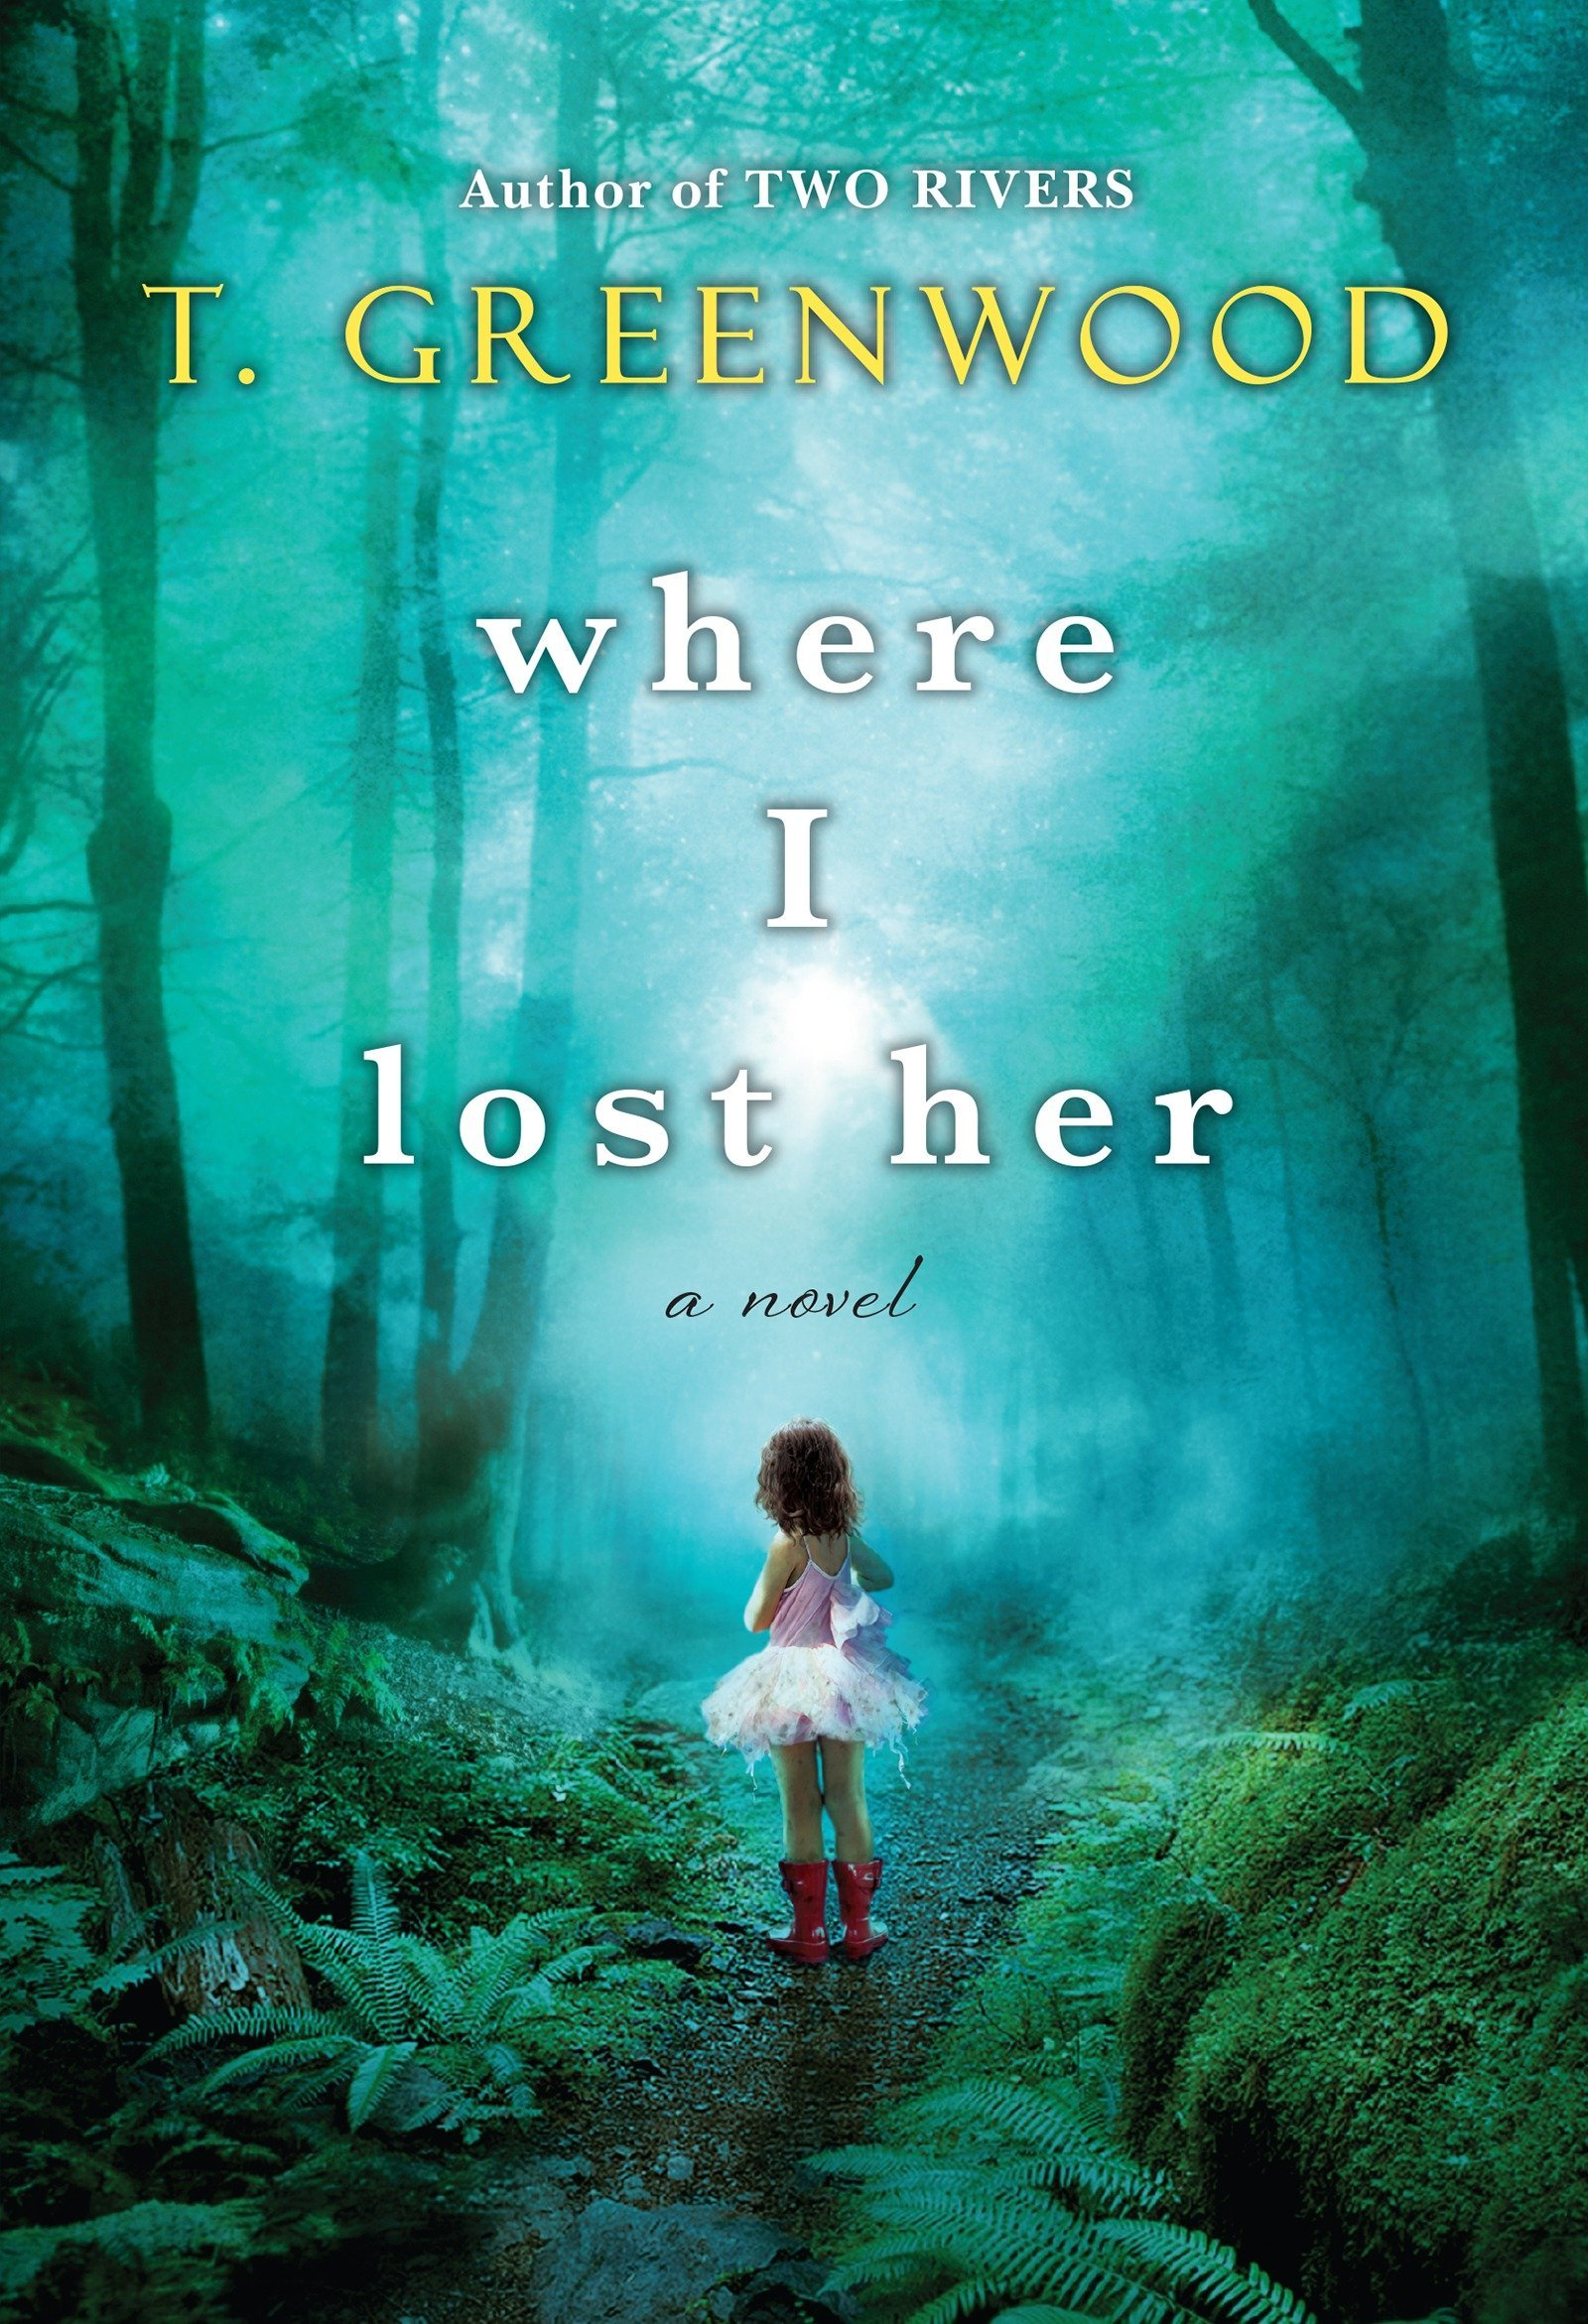 Amazon.com: Where I Lost Her (9780758290557): T. Greenwood: Books